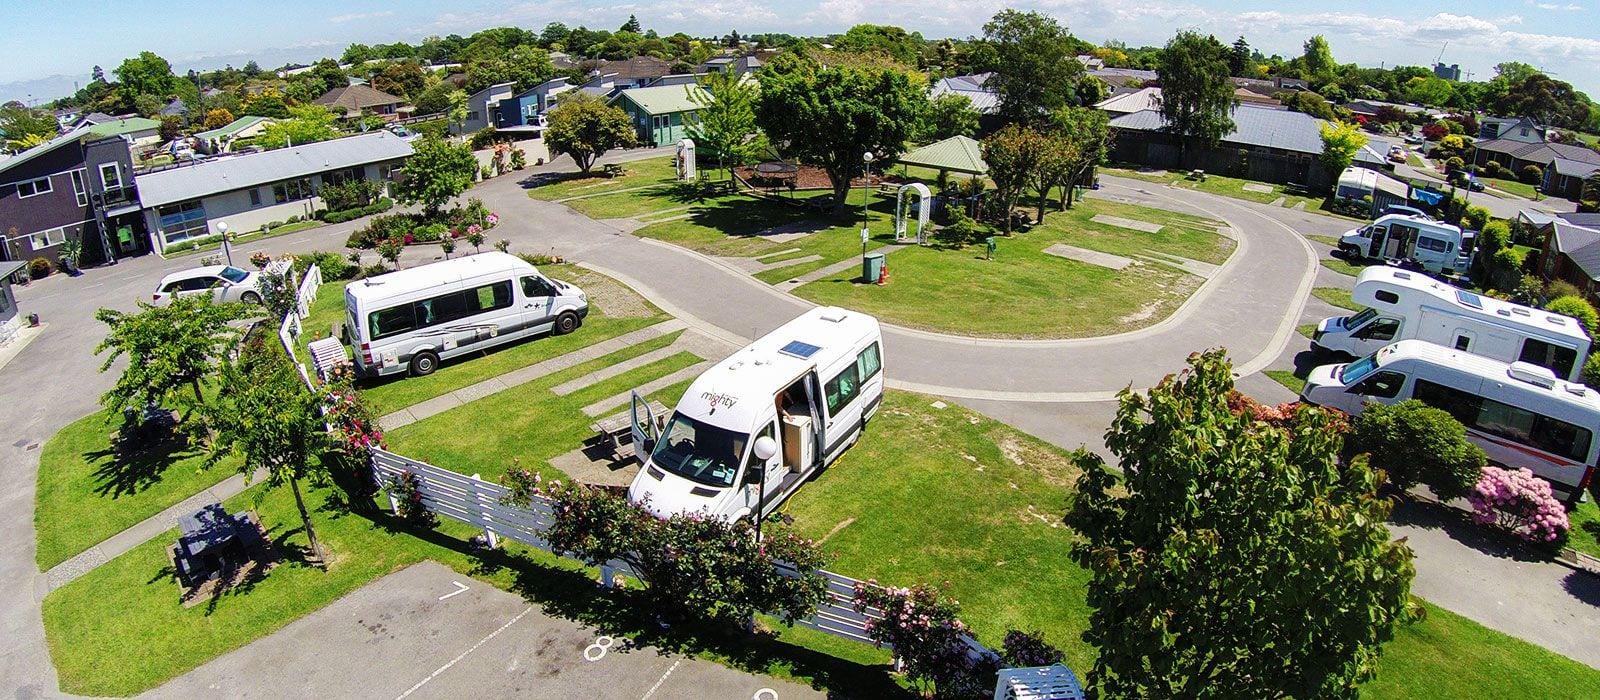 Campervan Sites Christchurch